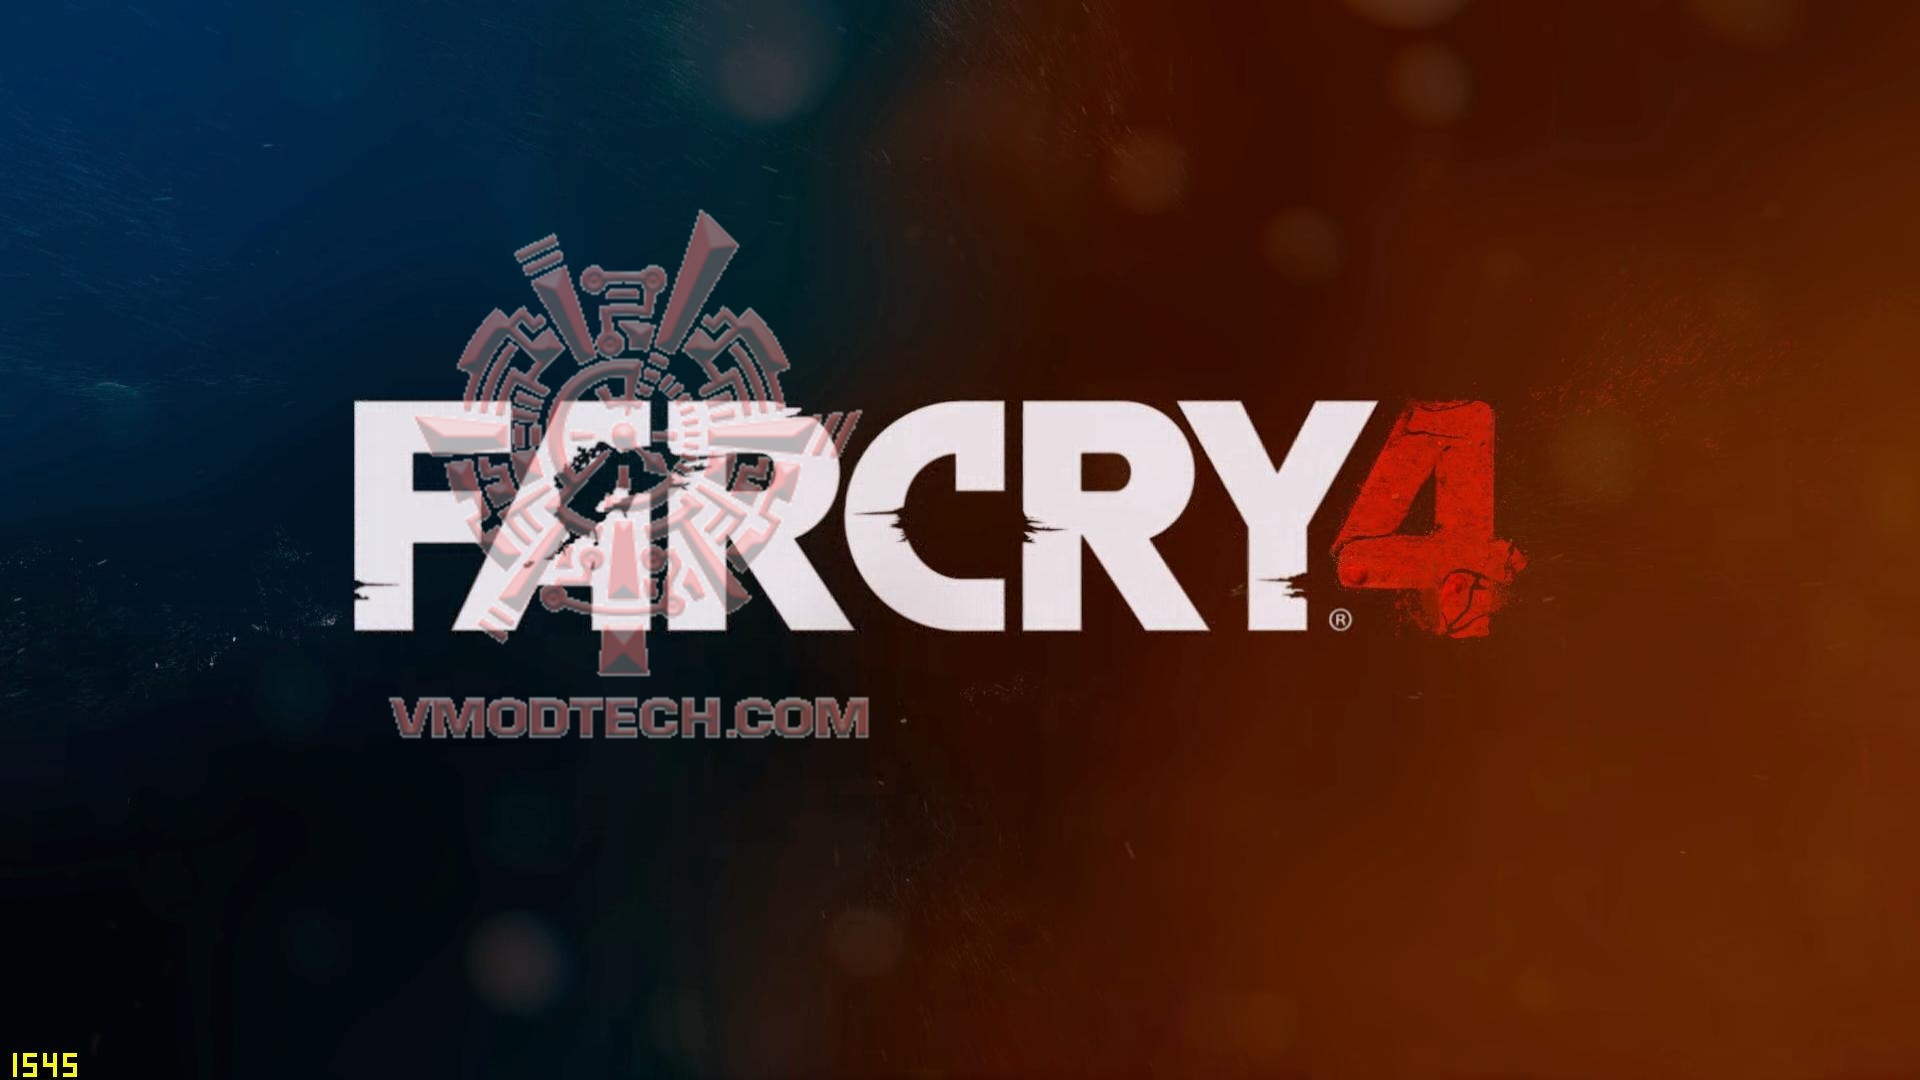 farcry4 2015 01 19 13 30 35 08 GIGABYTE Radeon RX 460 OC Edition 2GB GDDR5 Review